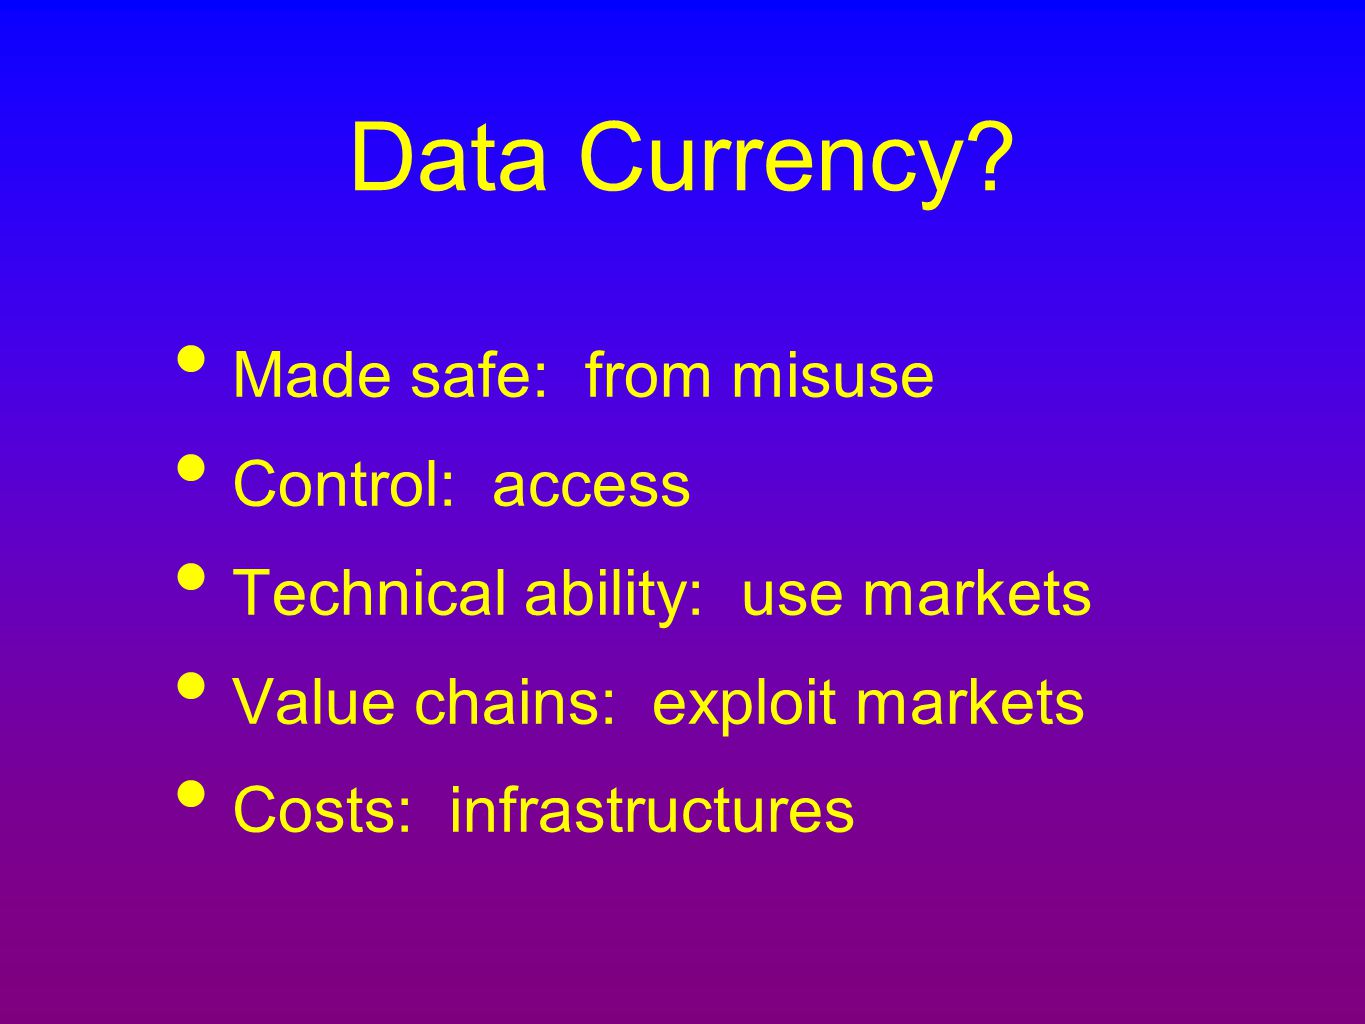 Data Currency? Made safe: from misuse Control: access Technical ability: use markets Value chains: exploit markets Costs: infrastructures